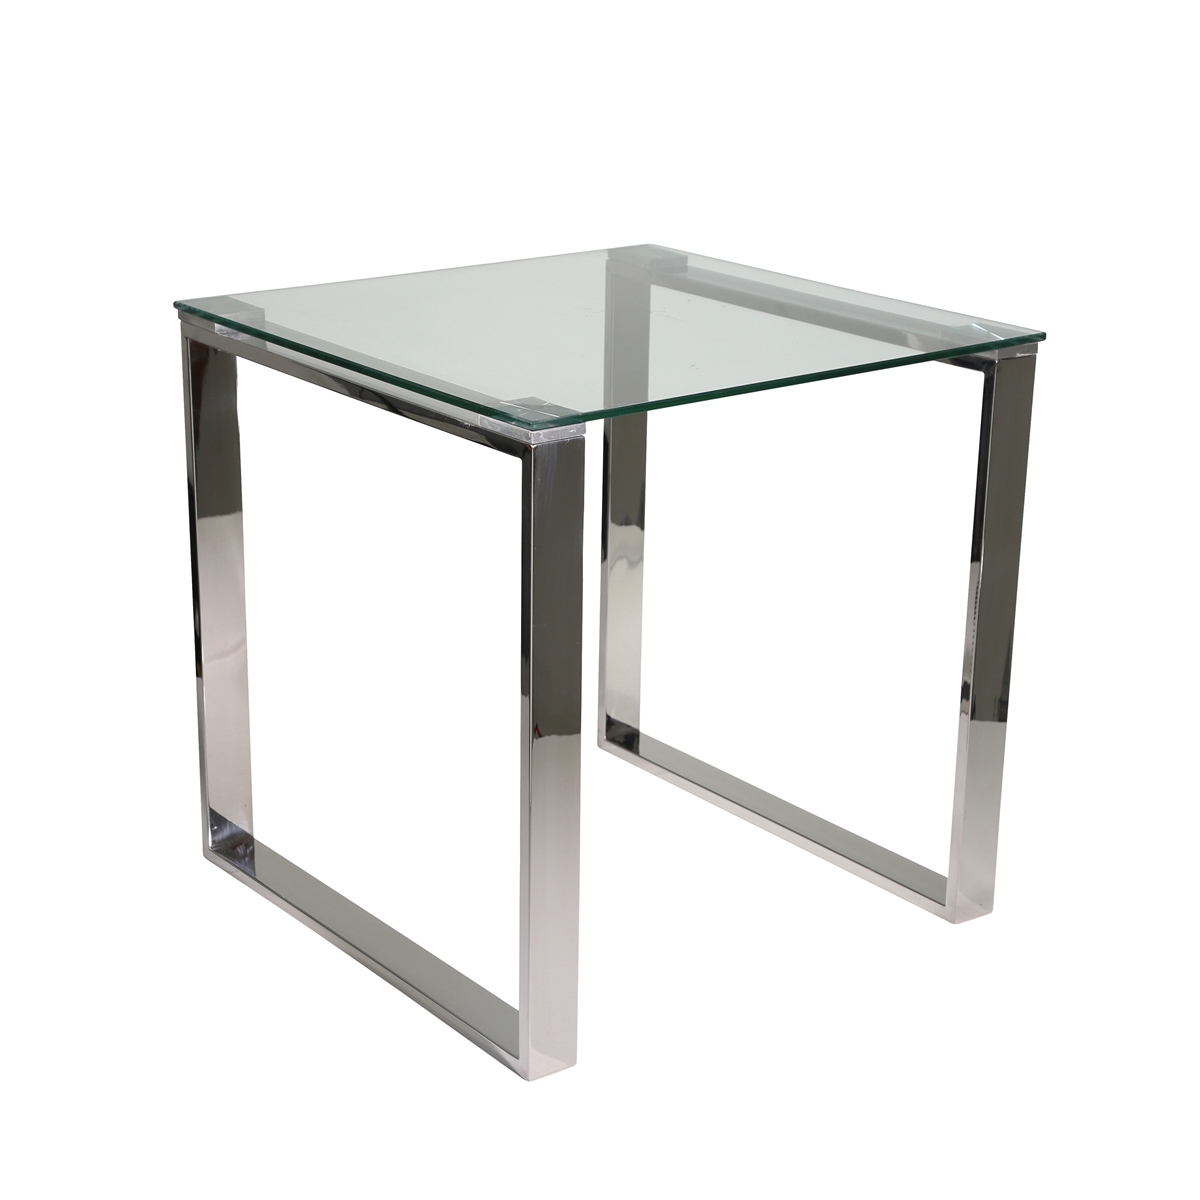 silver metal glass accent table sagebrook home log for pricing and availability material color ikea cube storage boxes dining room centerpiece ideas teak outdoor end rustic coffee